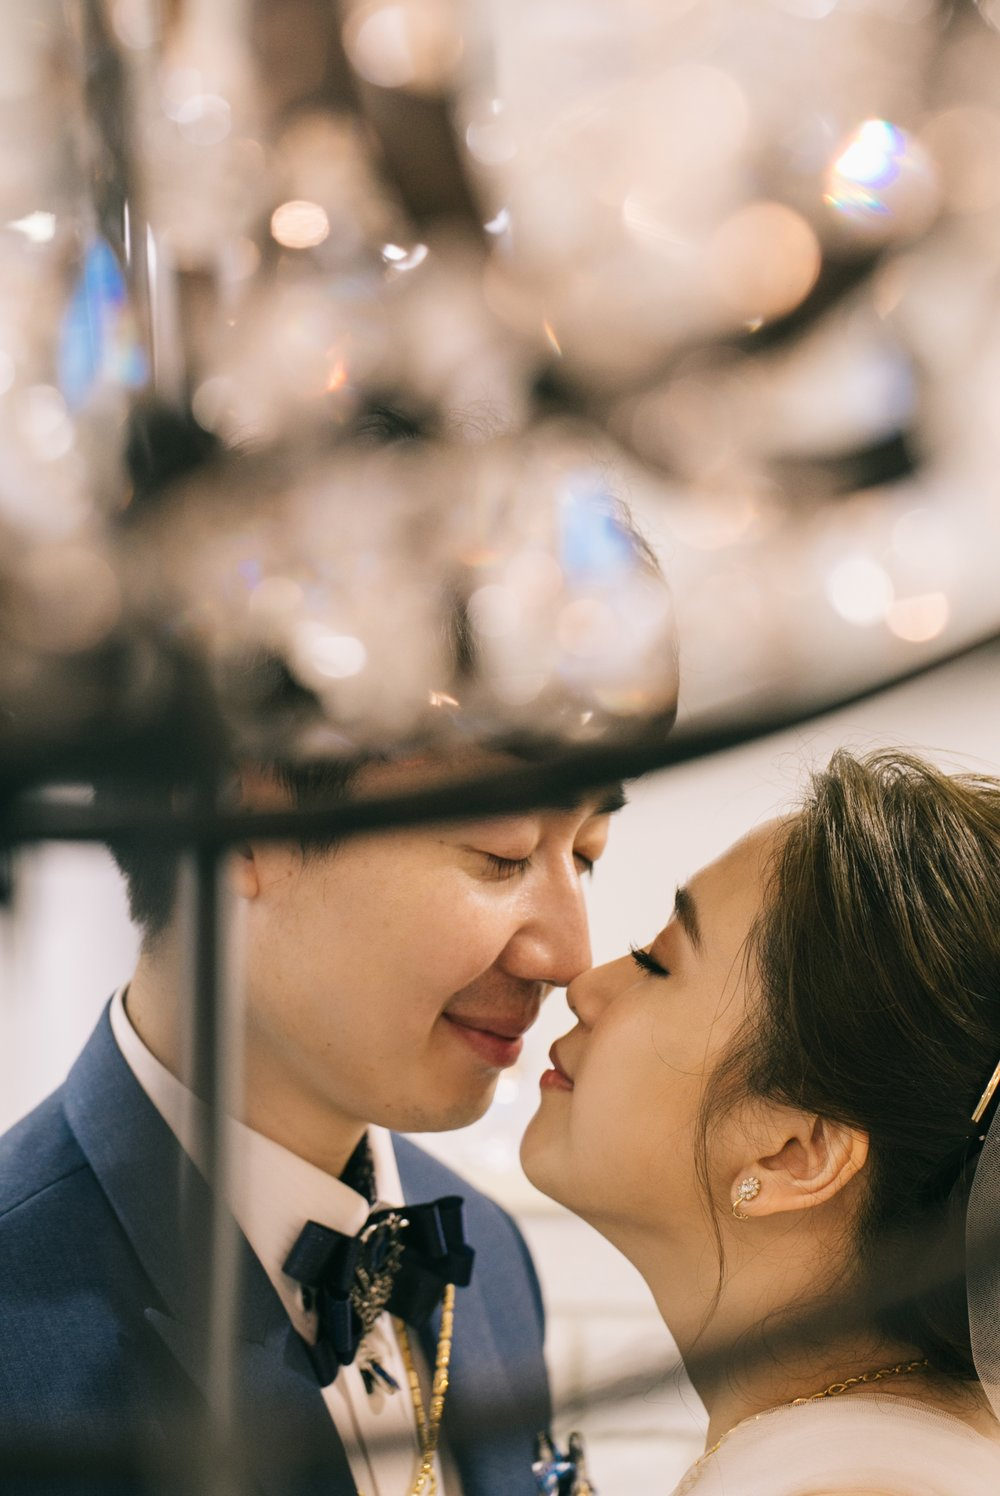 Keddy+Richard-wedding-新莊頤品飯店-156.jpg